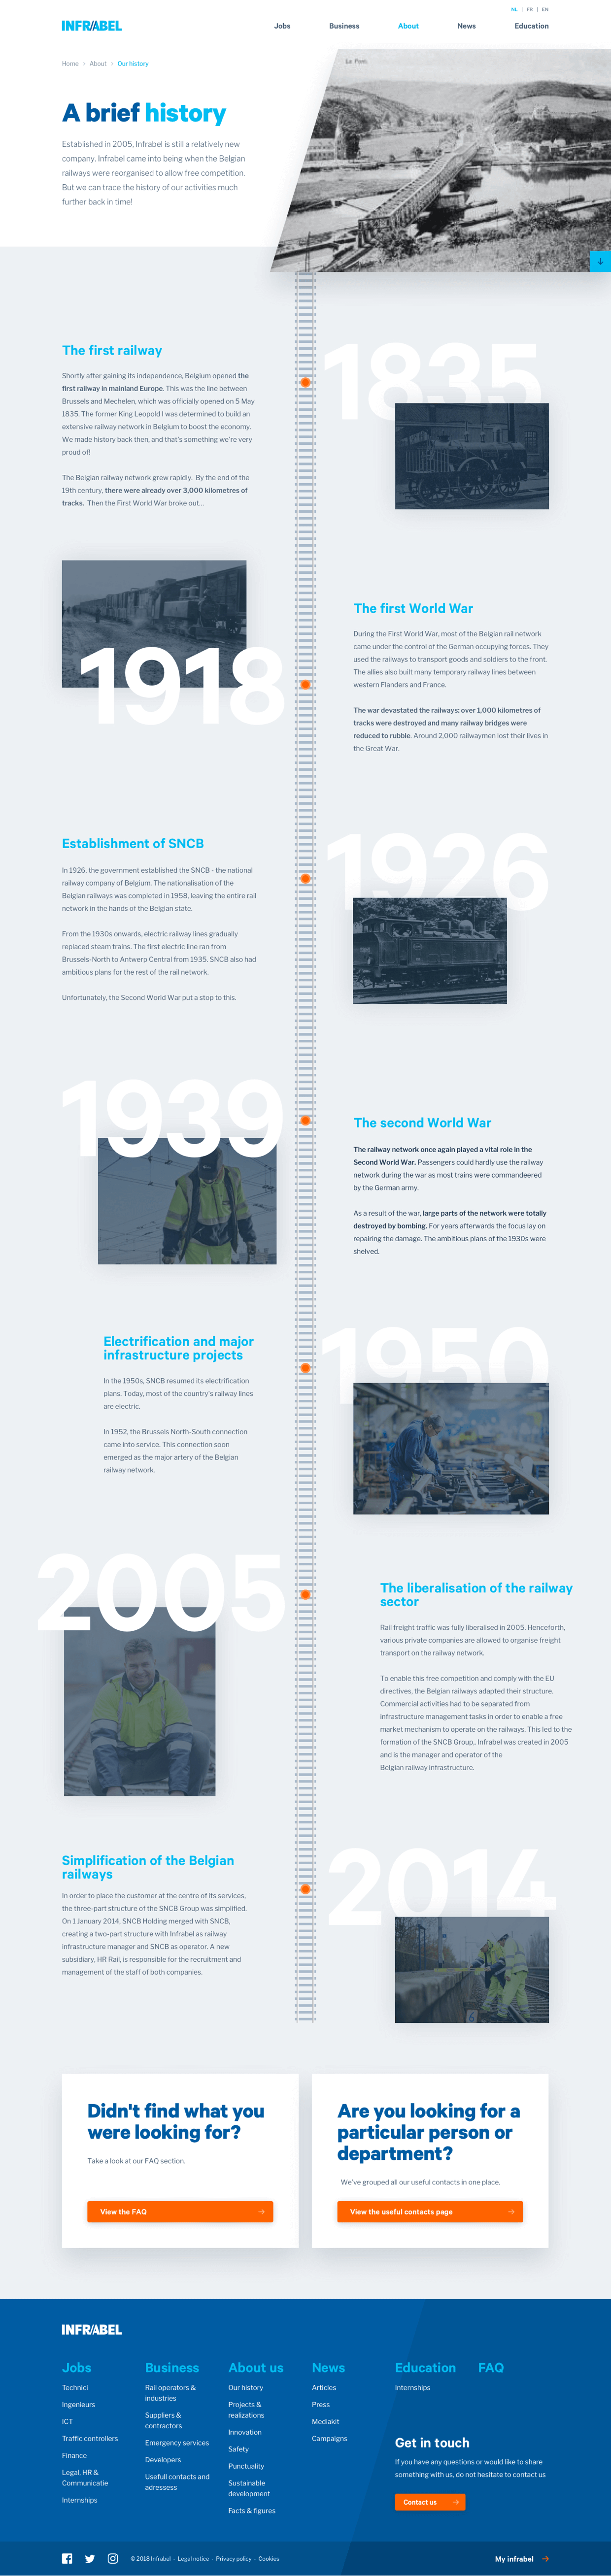 Design for Infrabel's History page